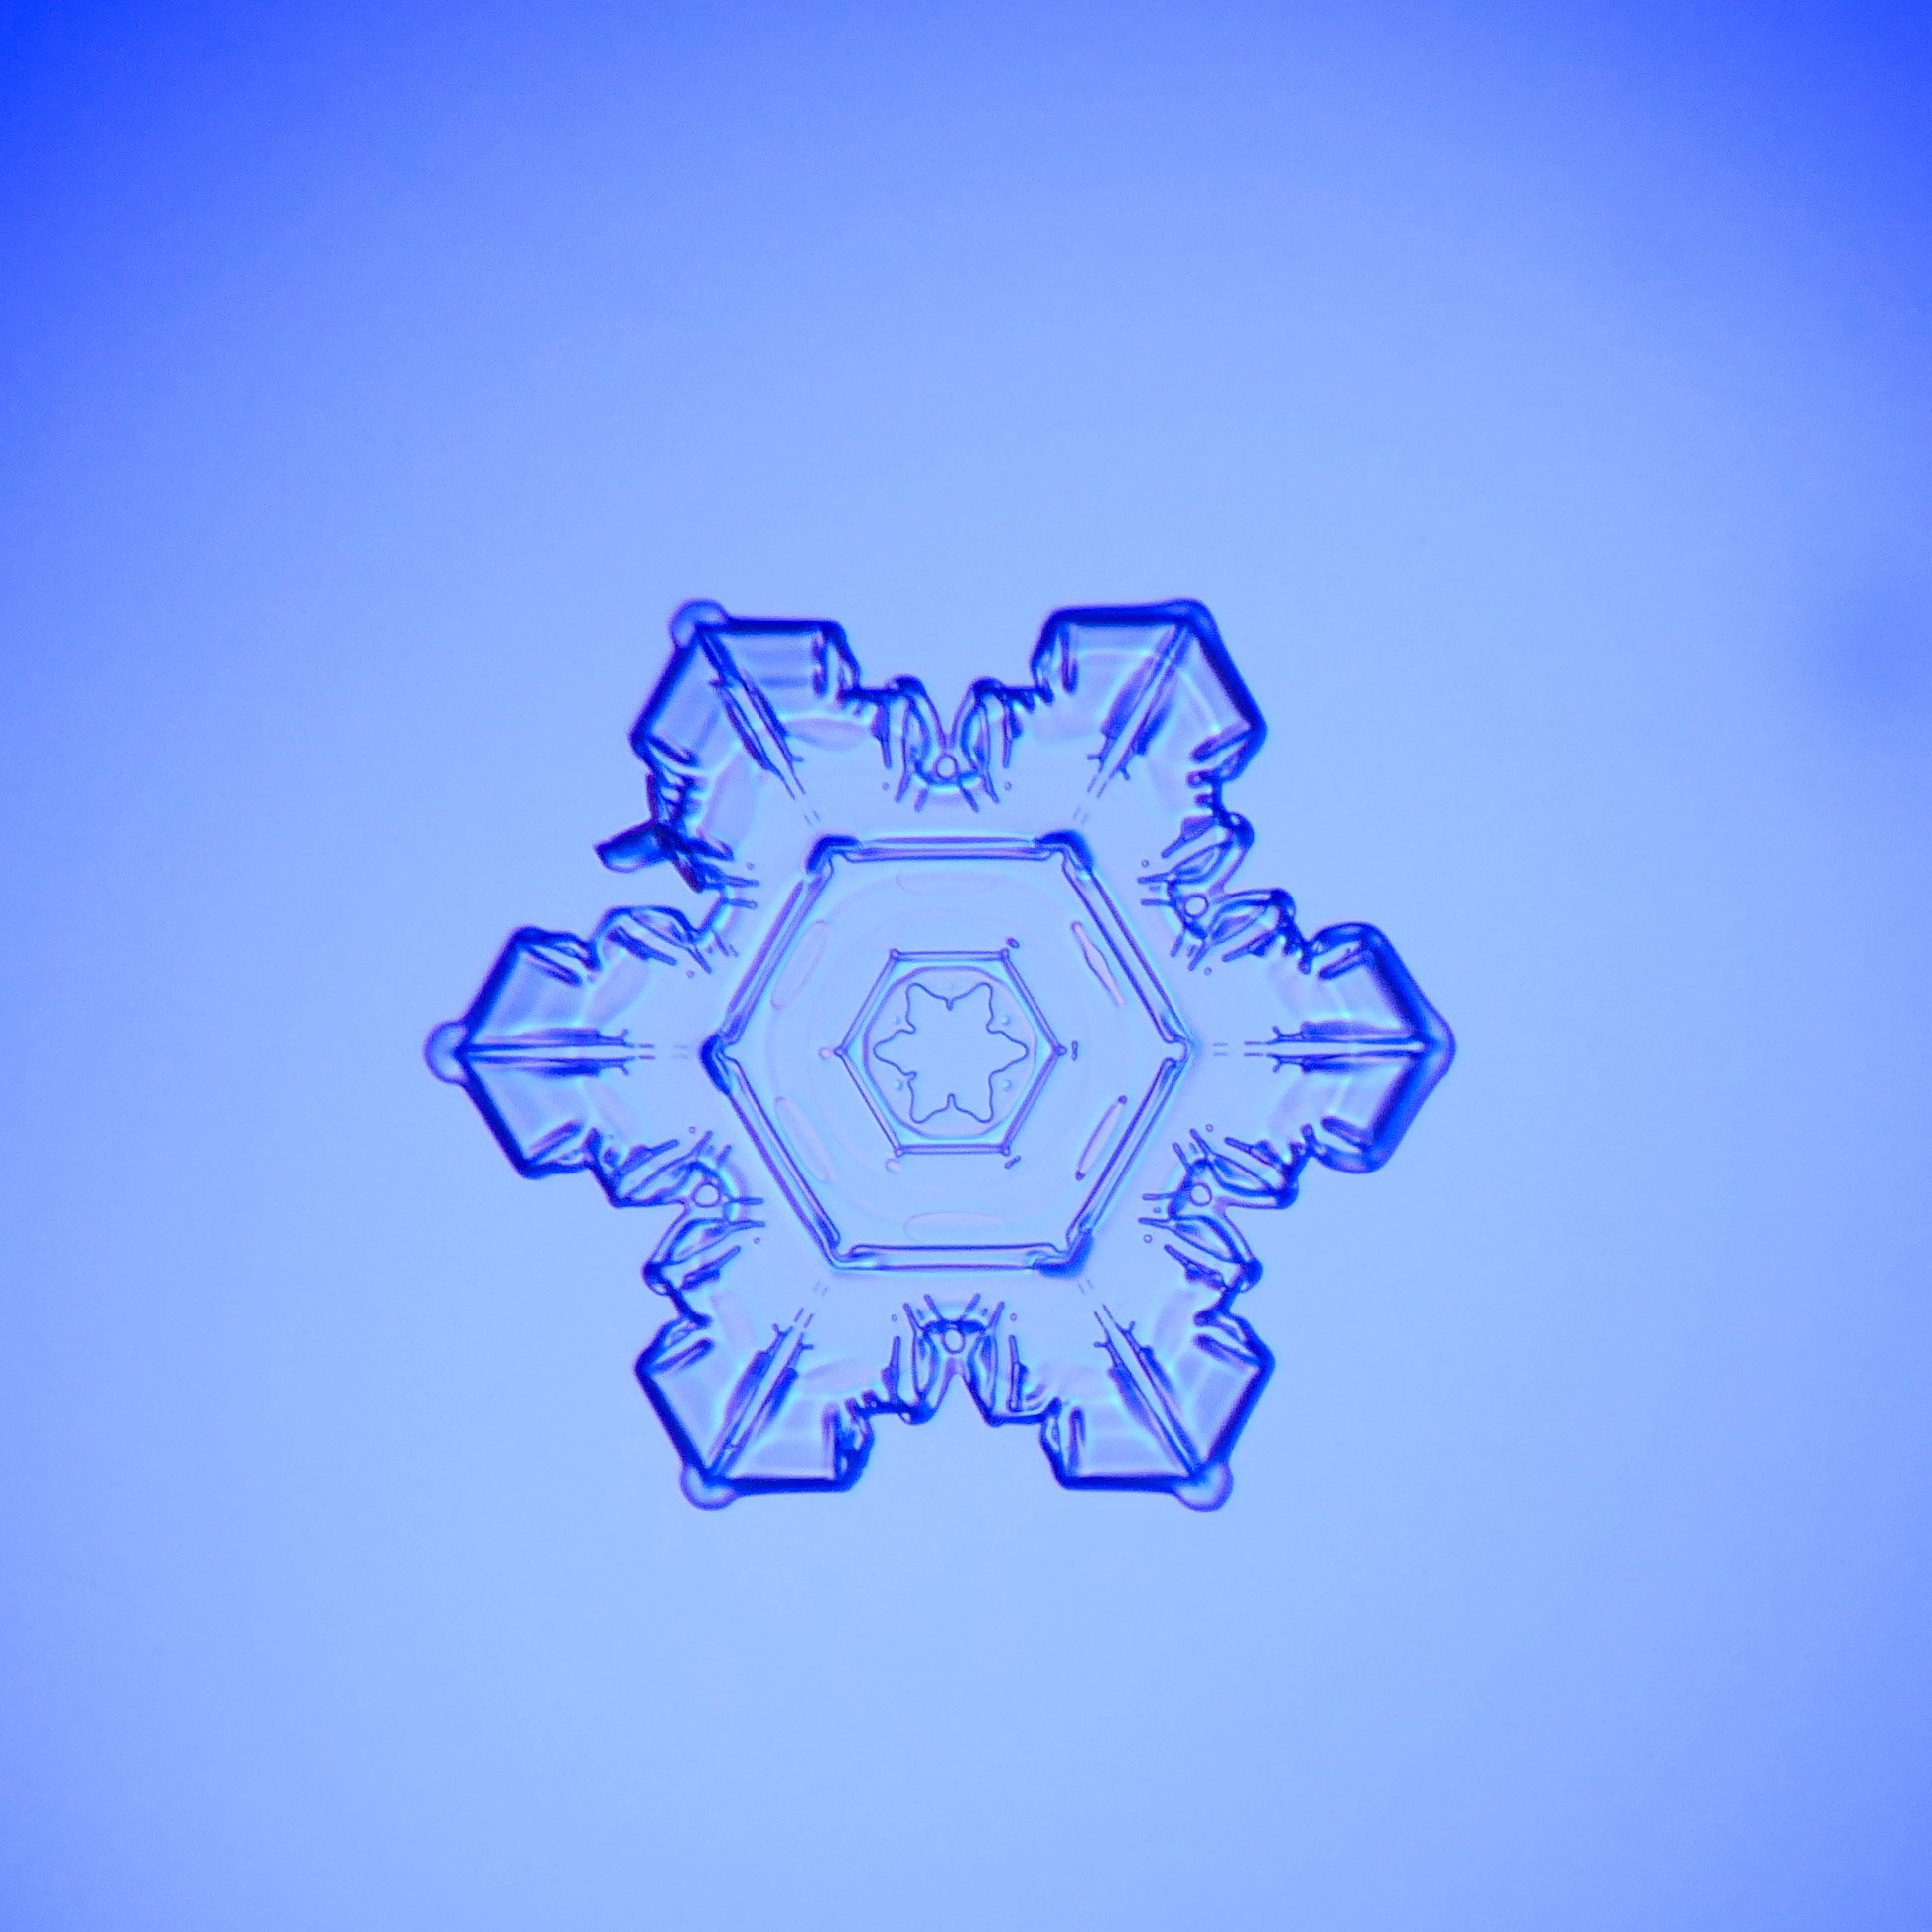 Snowflake photo by Ethan Beckler.